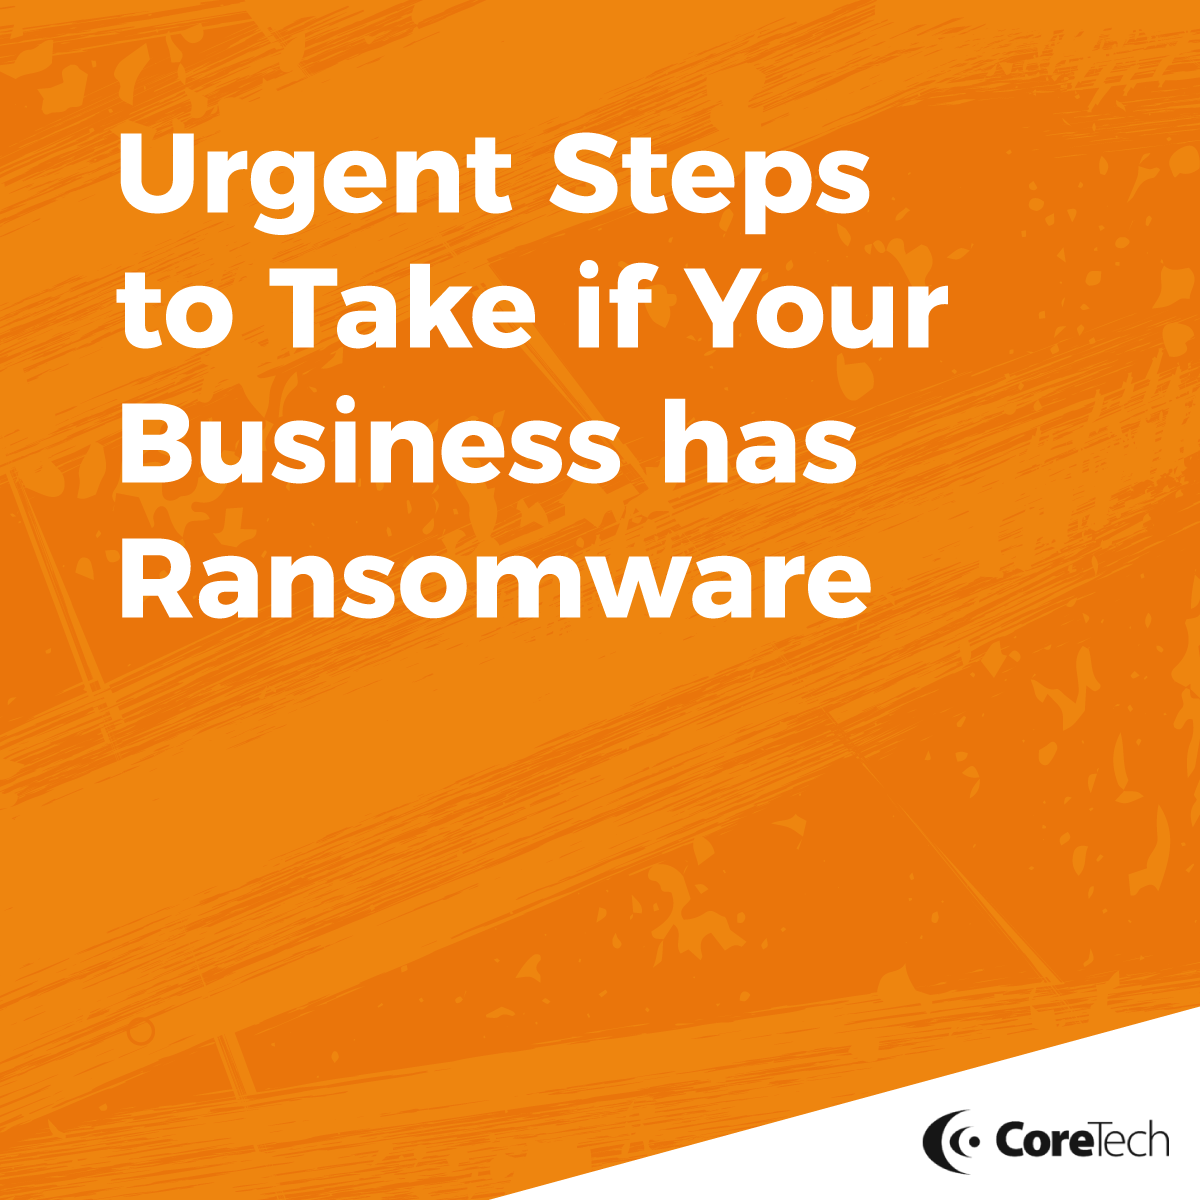 5 Urgent Steps to Take if you have Ransomware - Featured Image